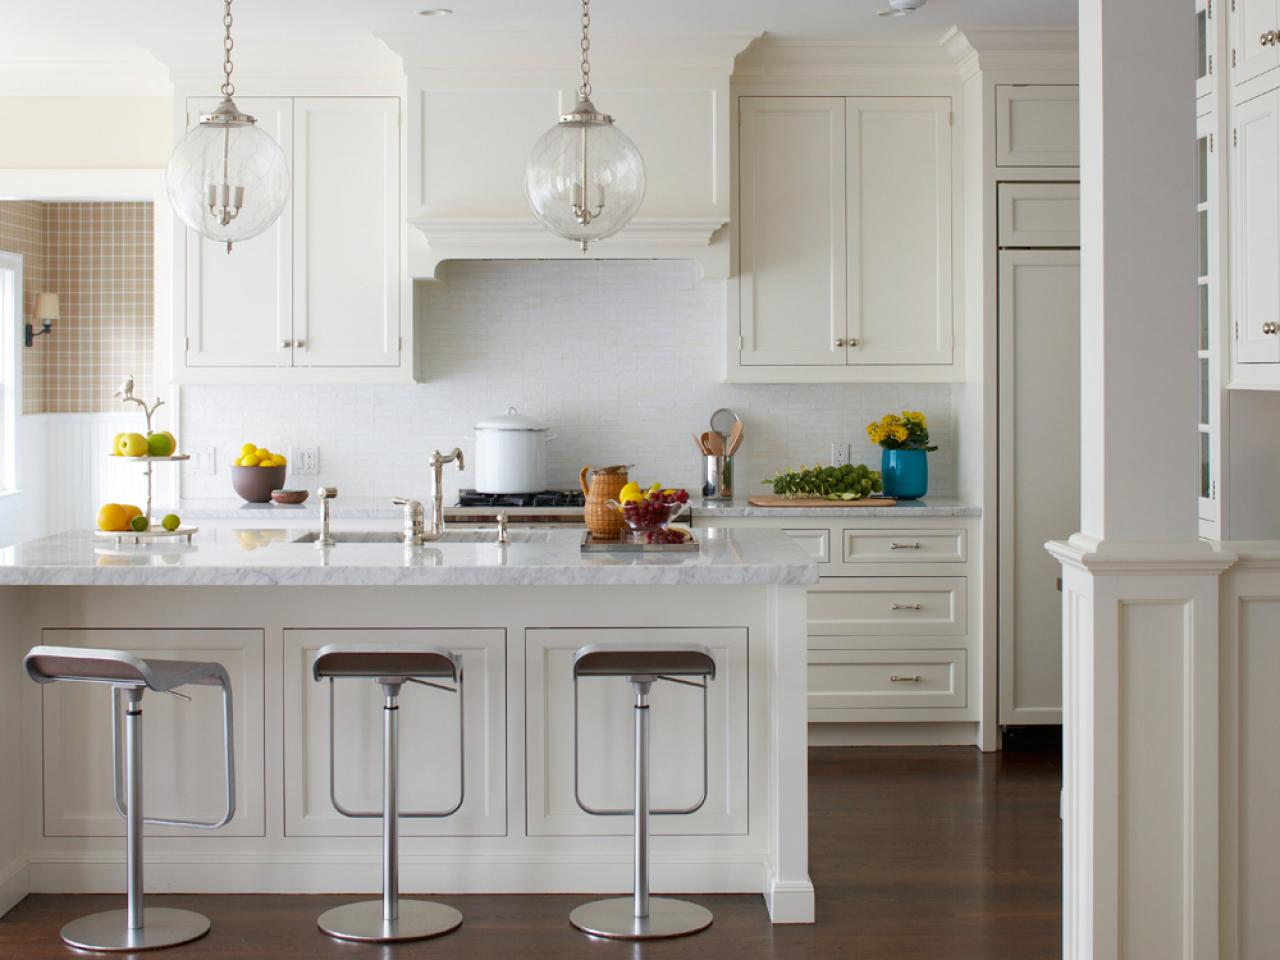 white with pops of color wonderful white kitchens how to decorate them so theyre anything but vanilla - White Kitchens